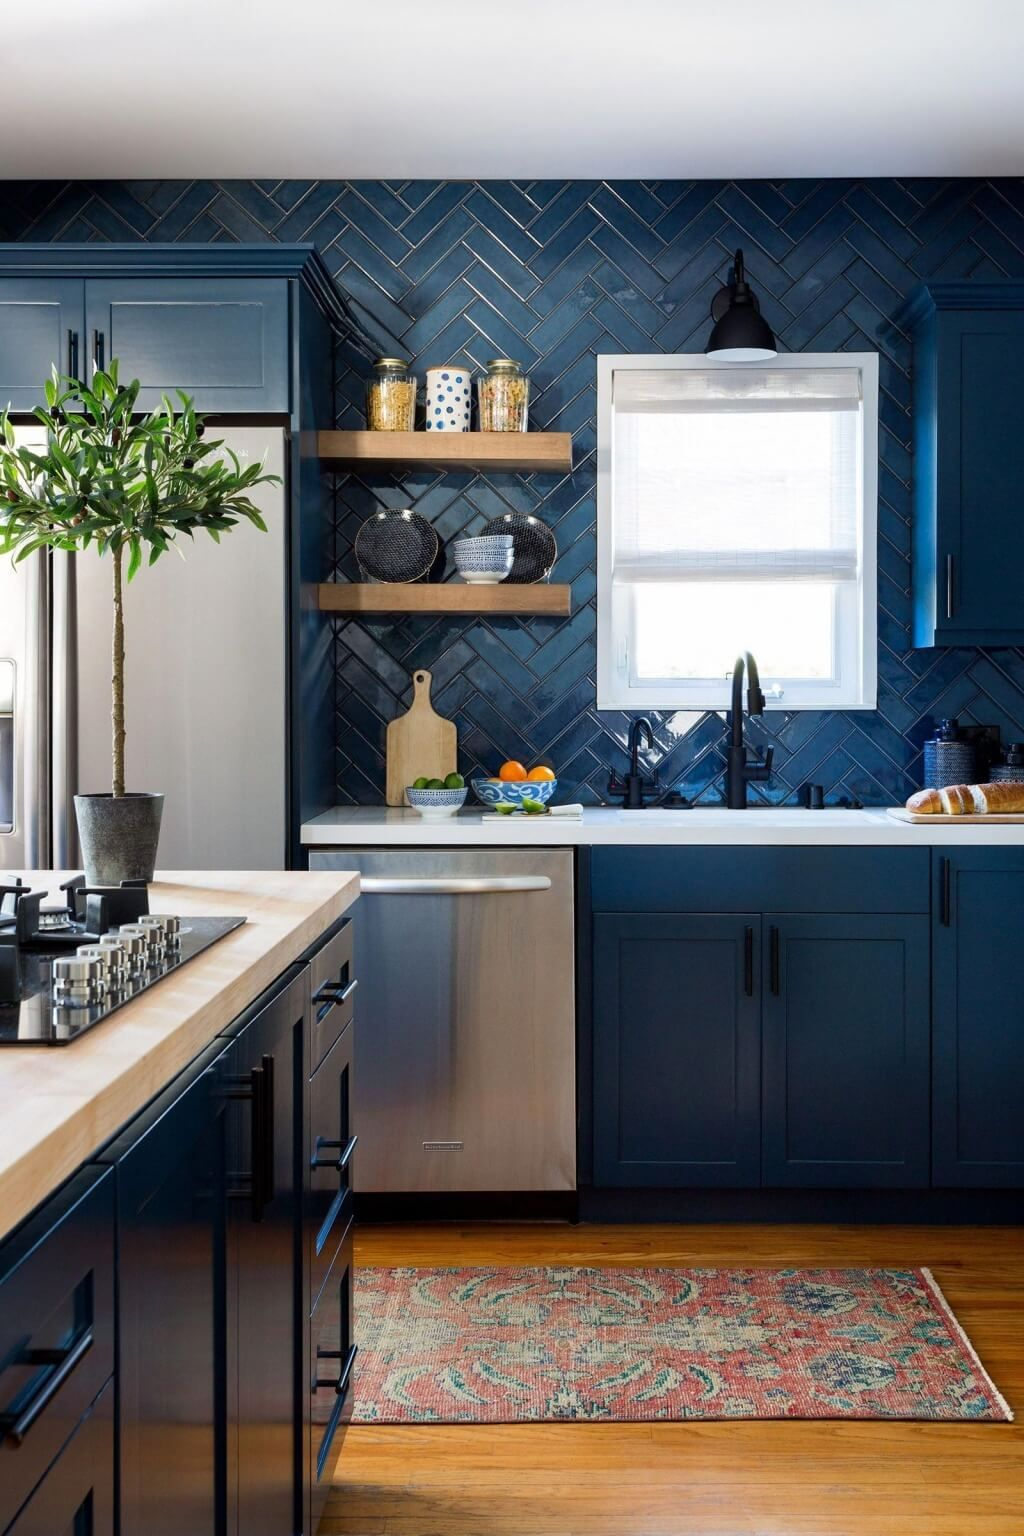 10 Dark Kitchen Backsplash Ideas 2020 Dramatic And Cool